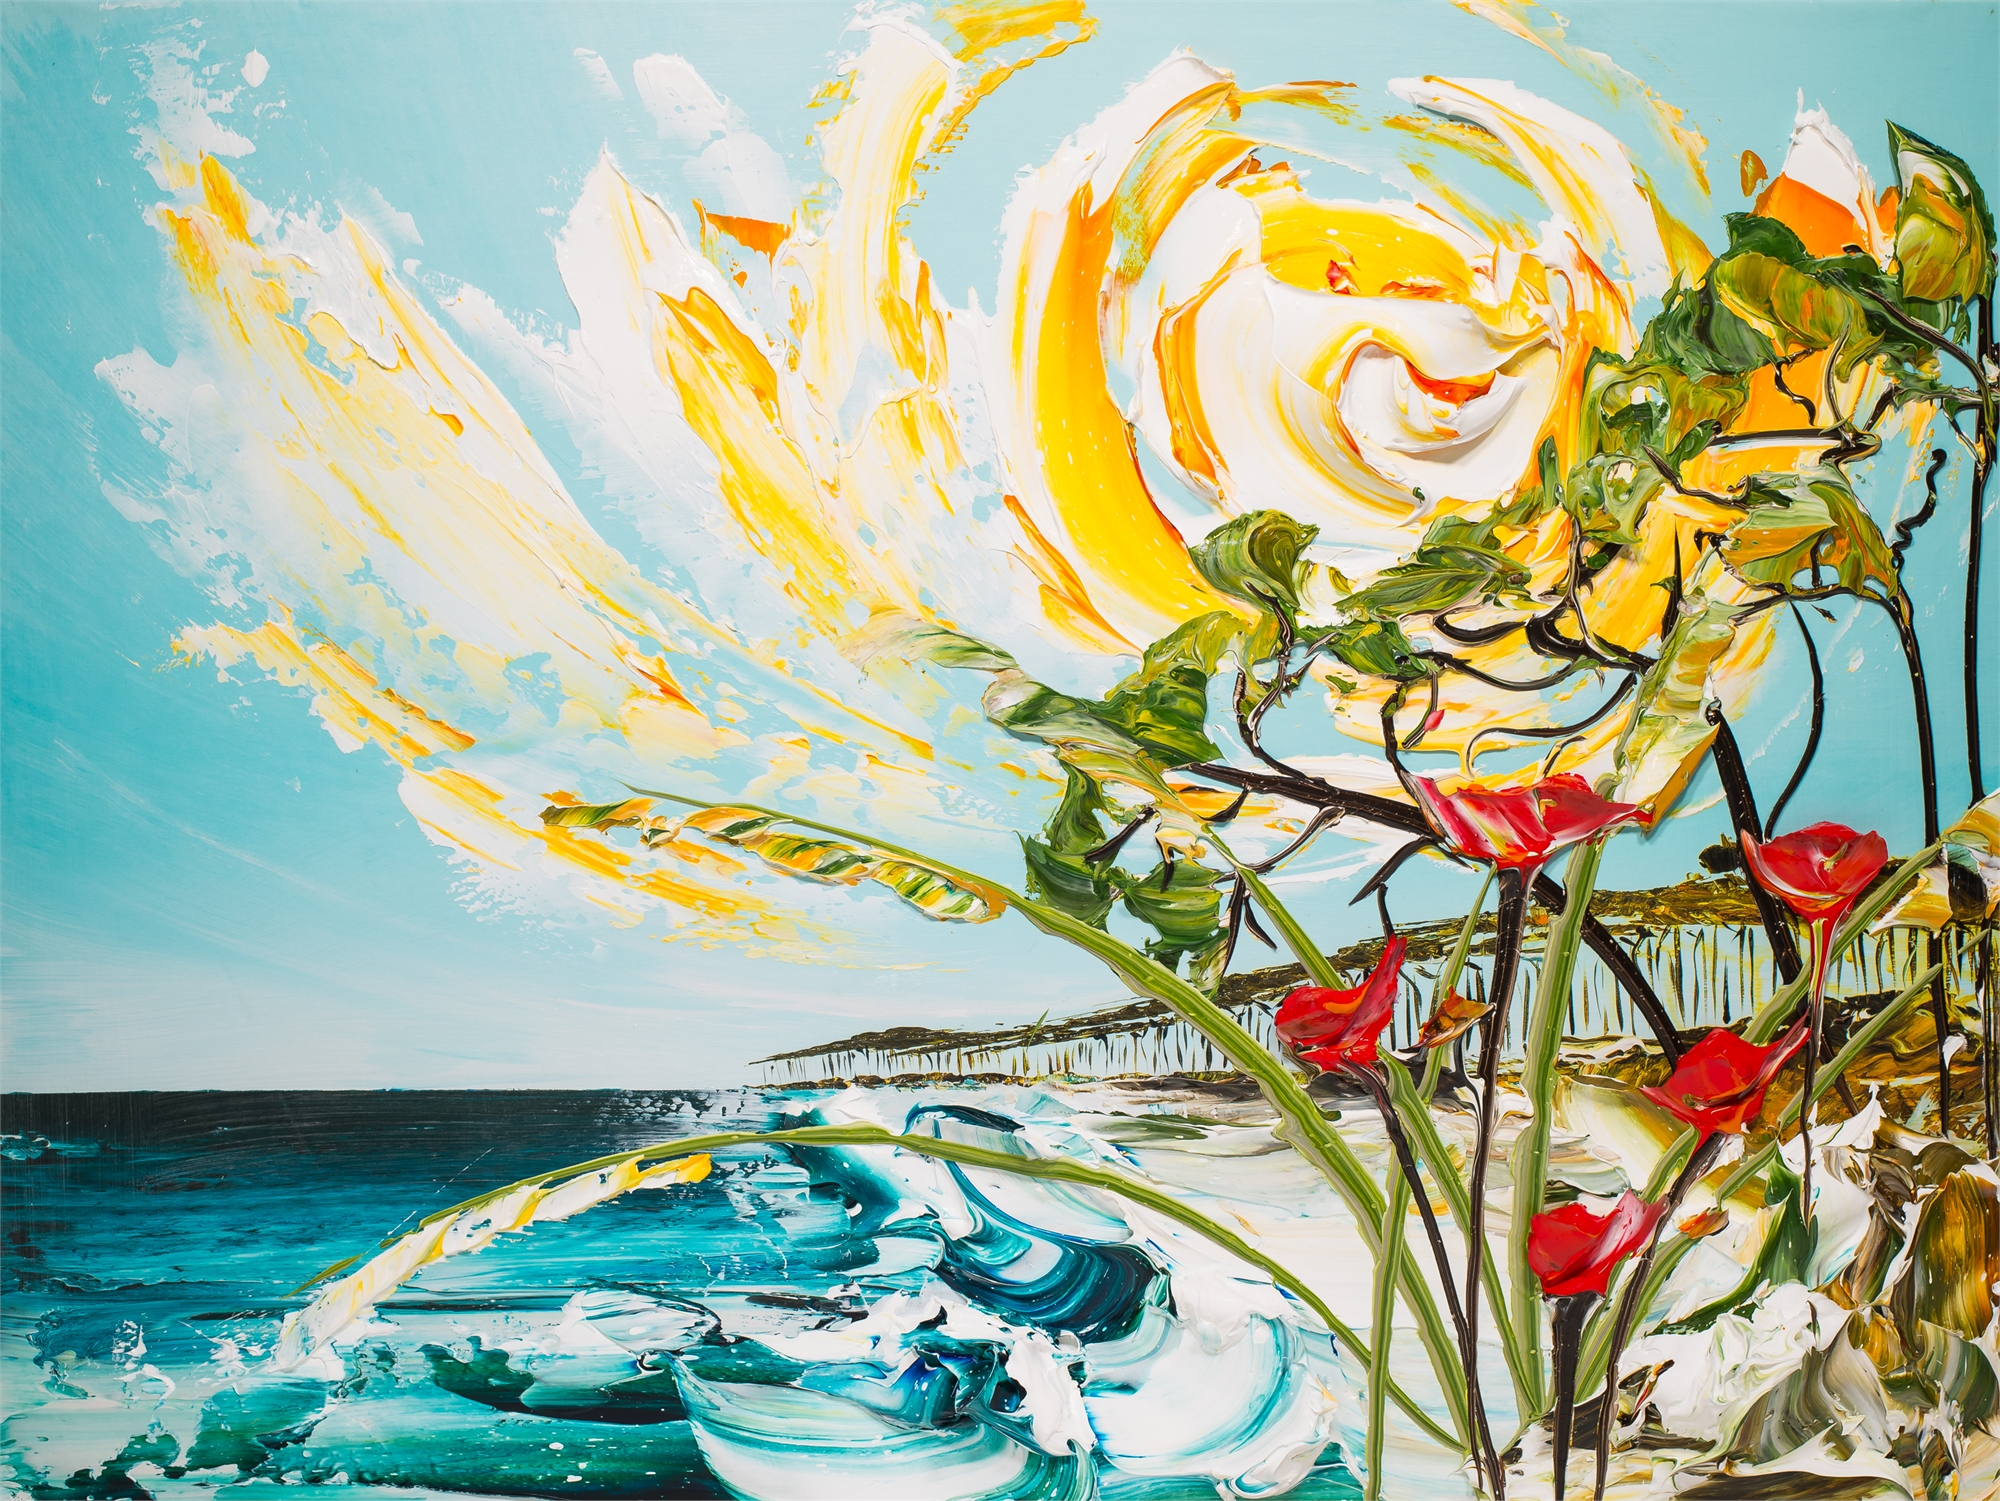 HANNAH MARTIN'S PARTY 40X30 SEASCAPE by Justin Gaffrey